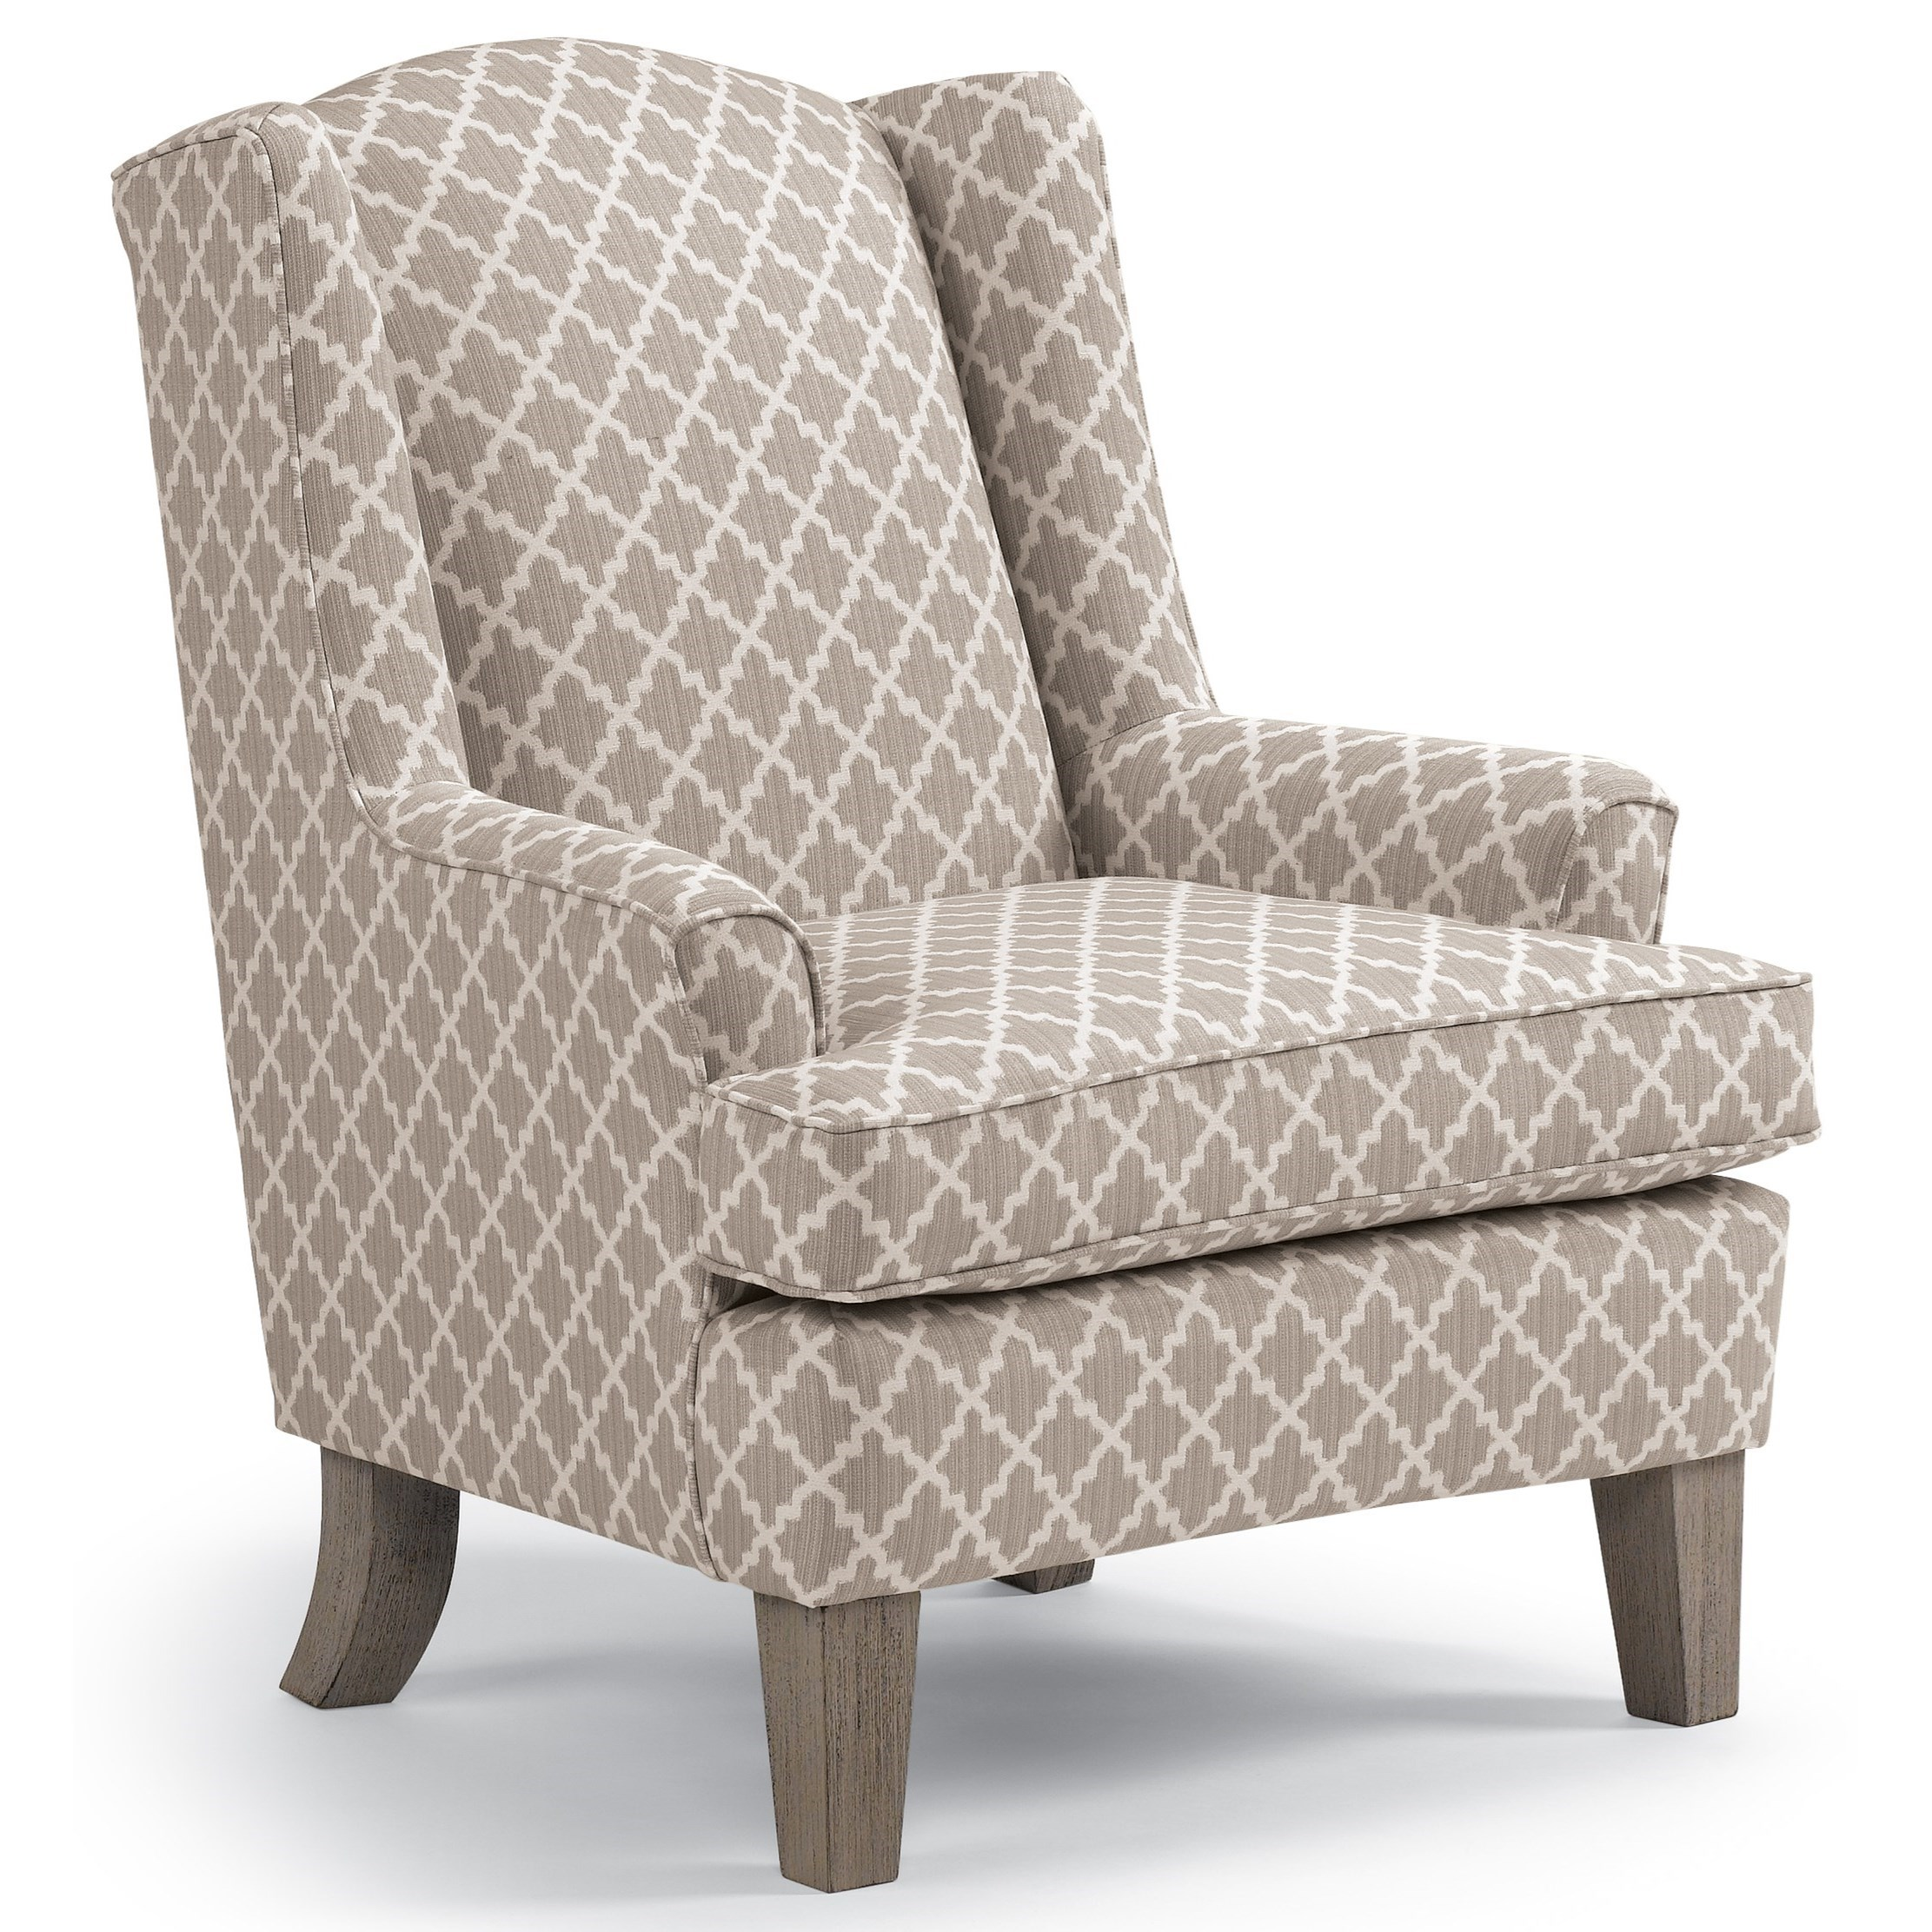 Wing Chairs Andrea Wing Chair by Best Home Furnishings at Godby Home Furnishings